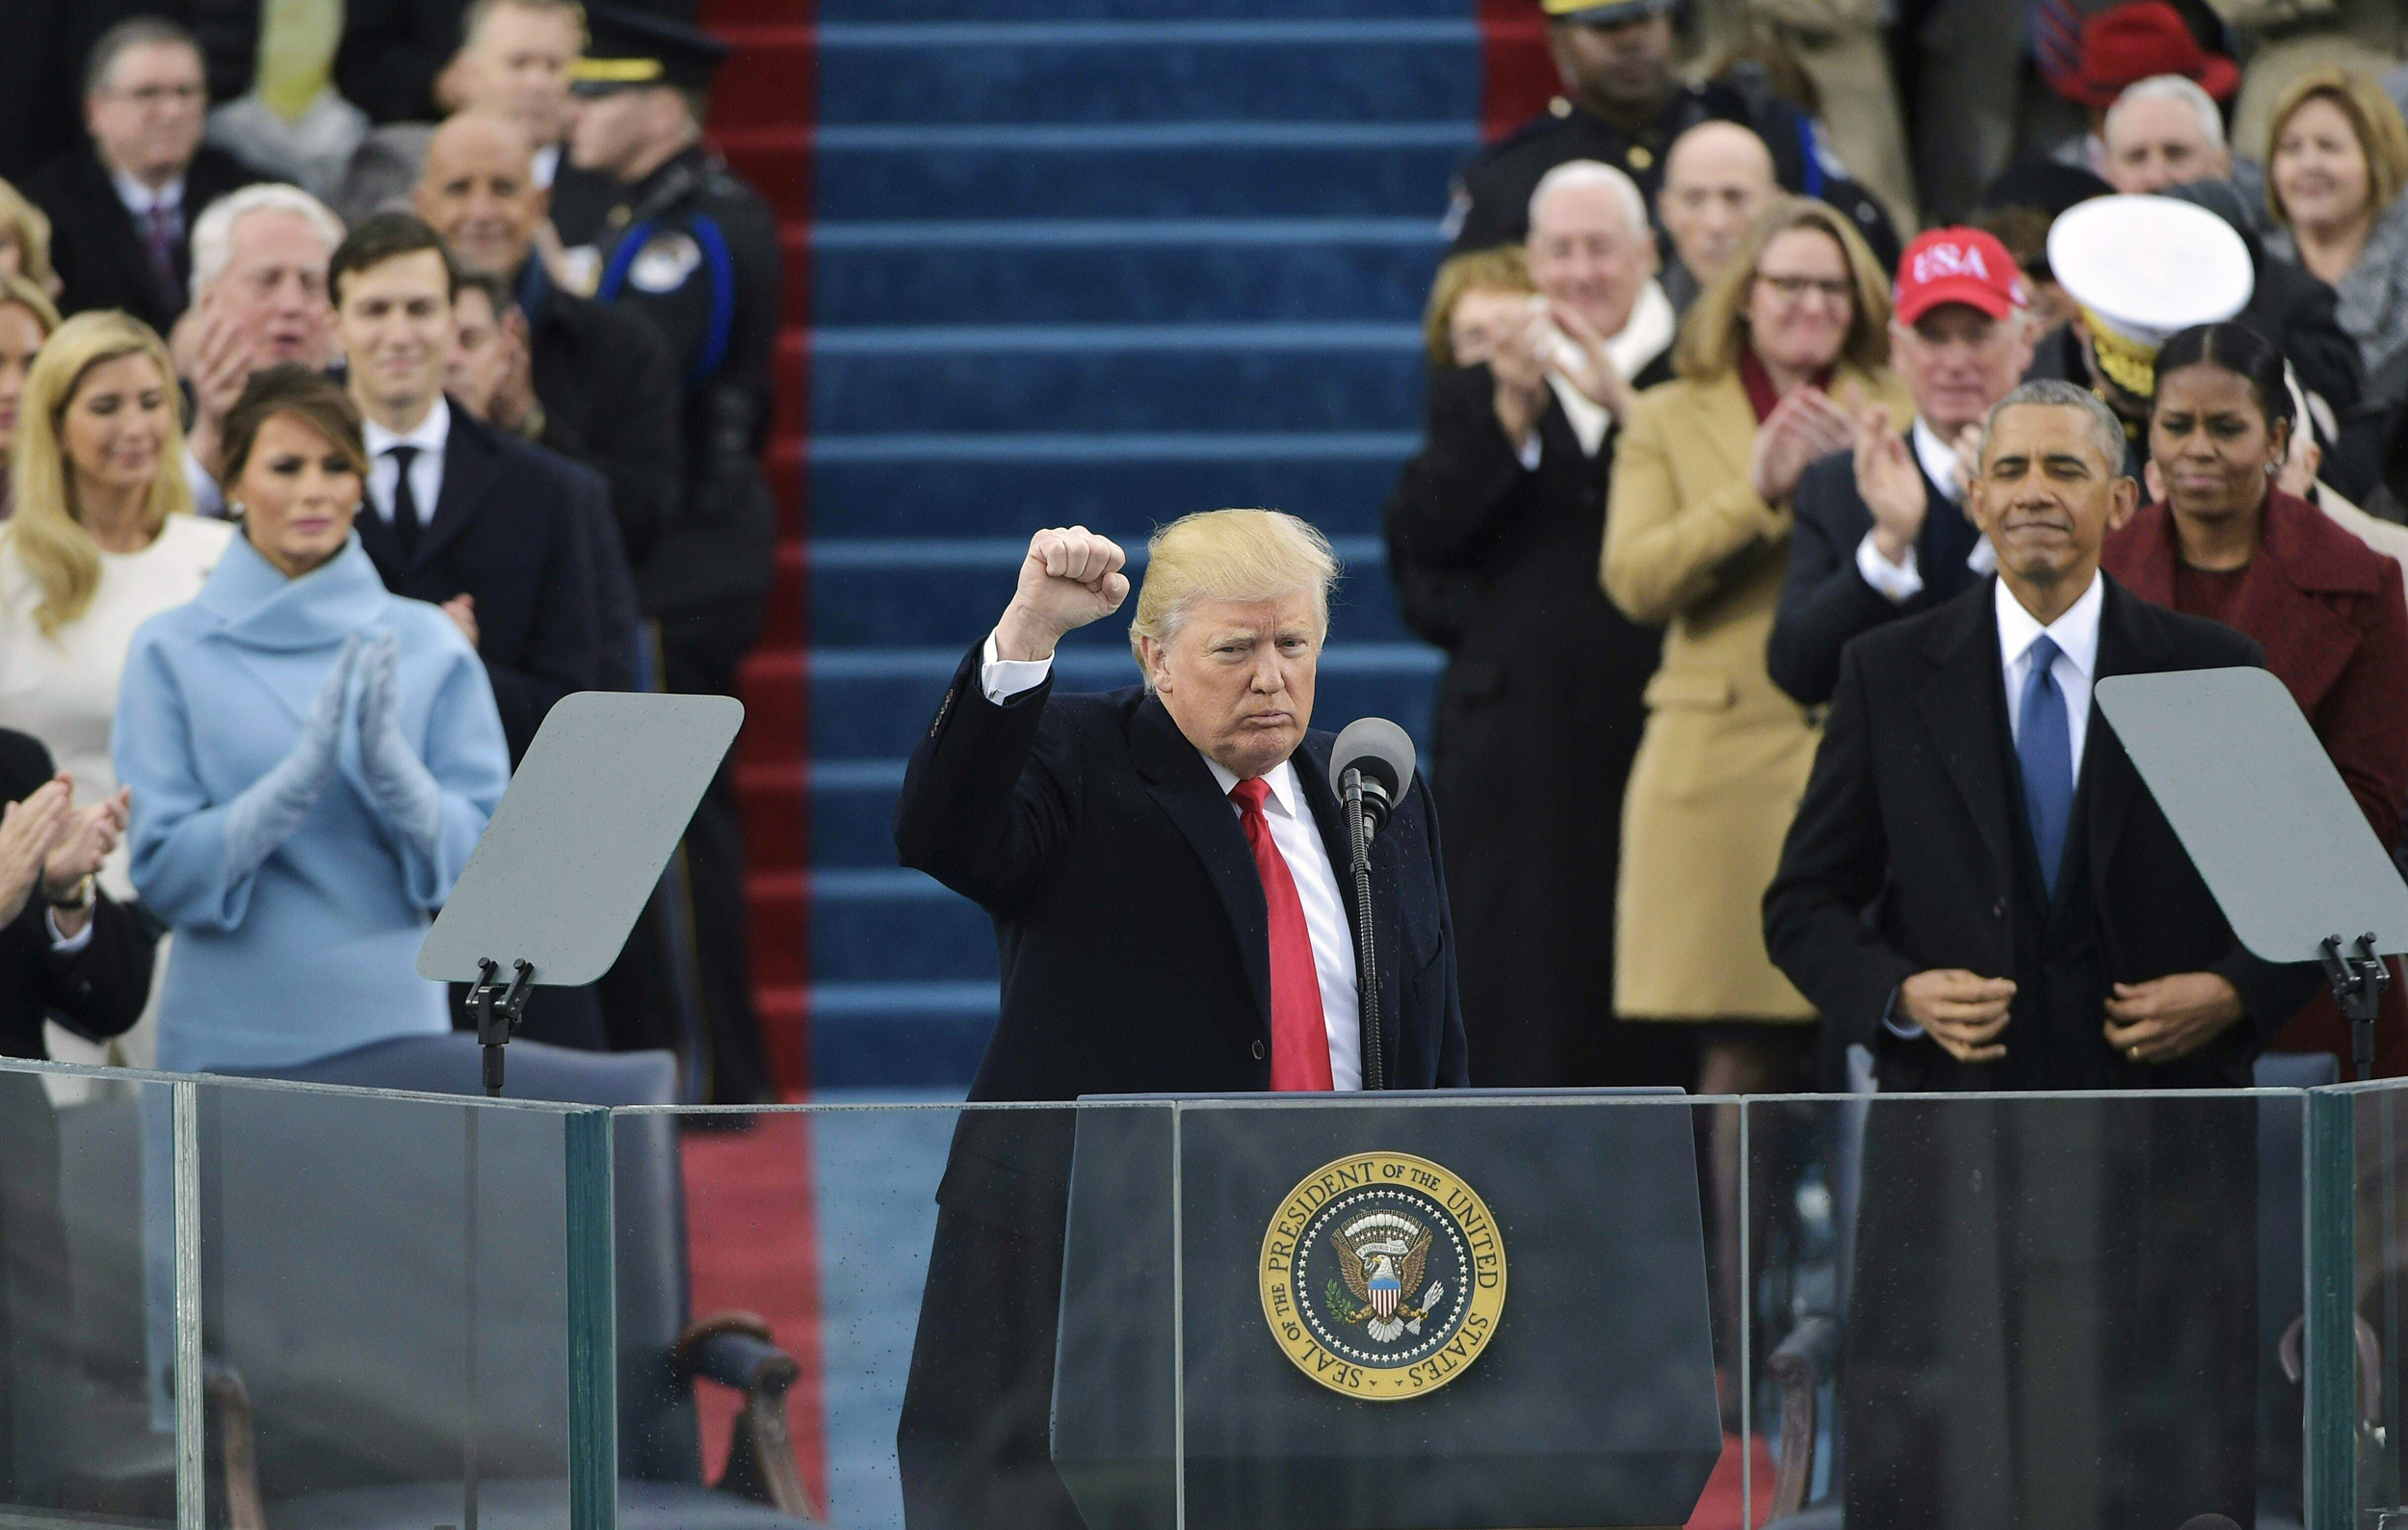 Trump Sworn In as President, Outlines Populist 'America First' Vision